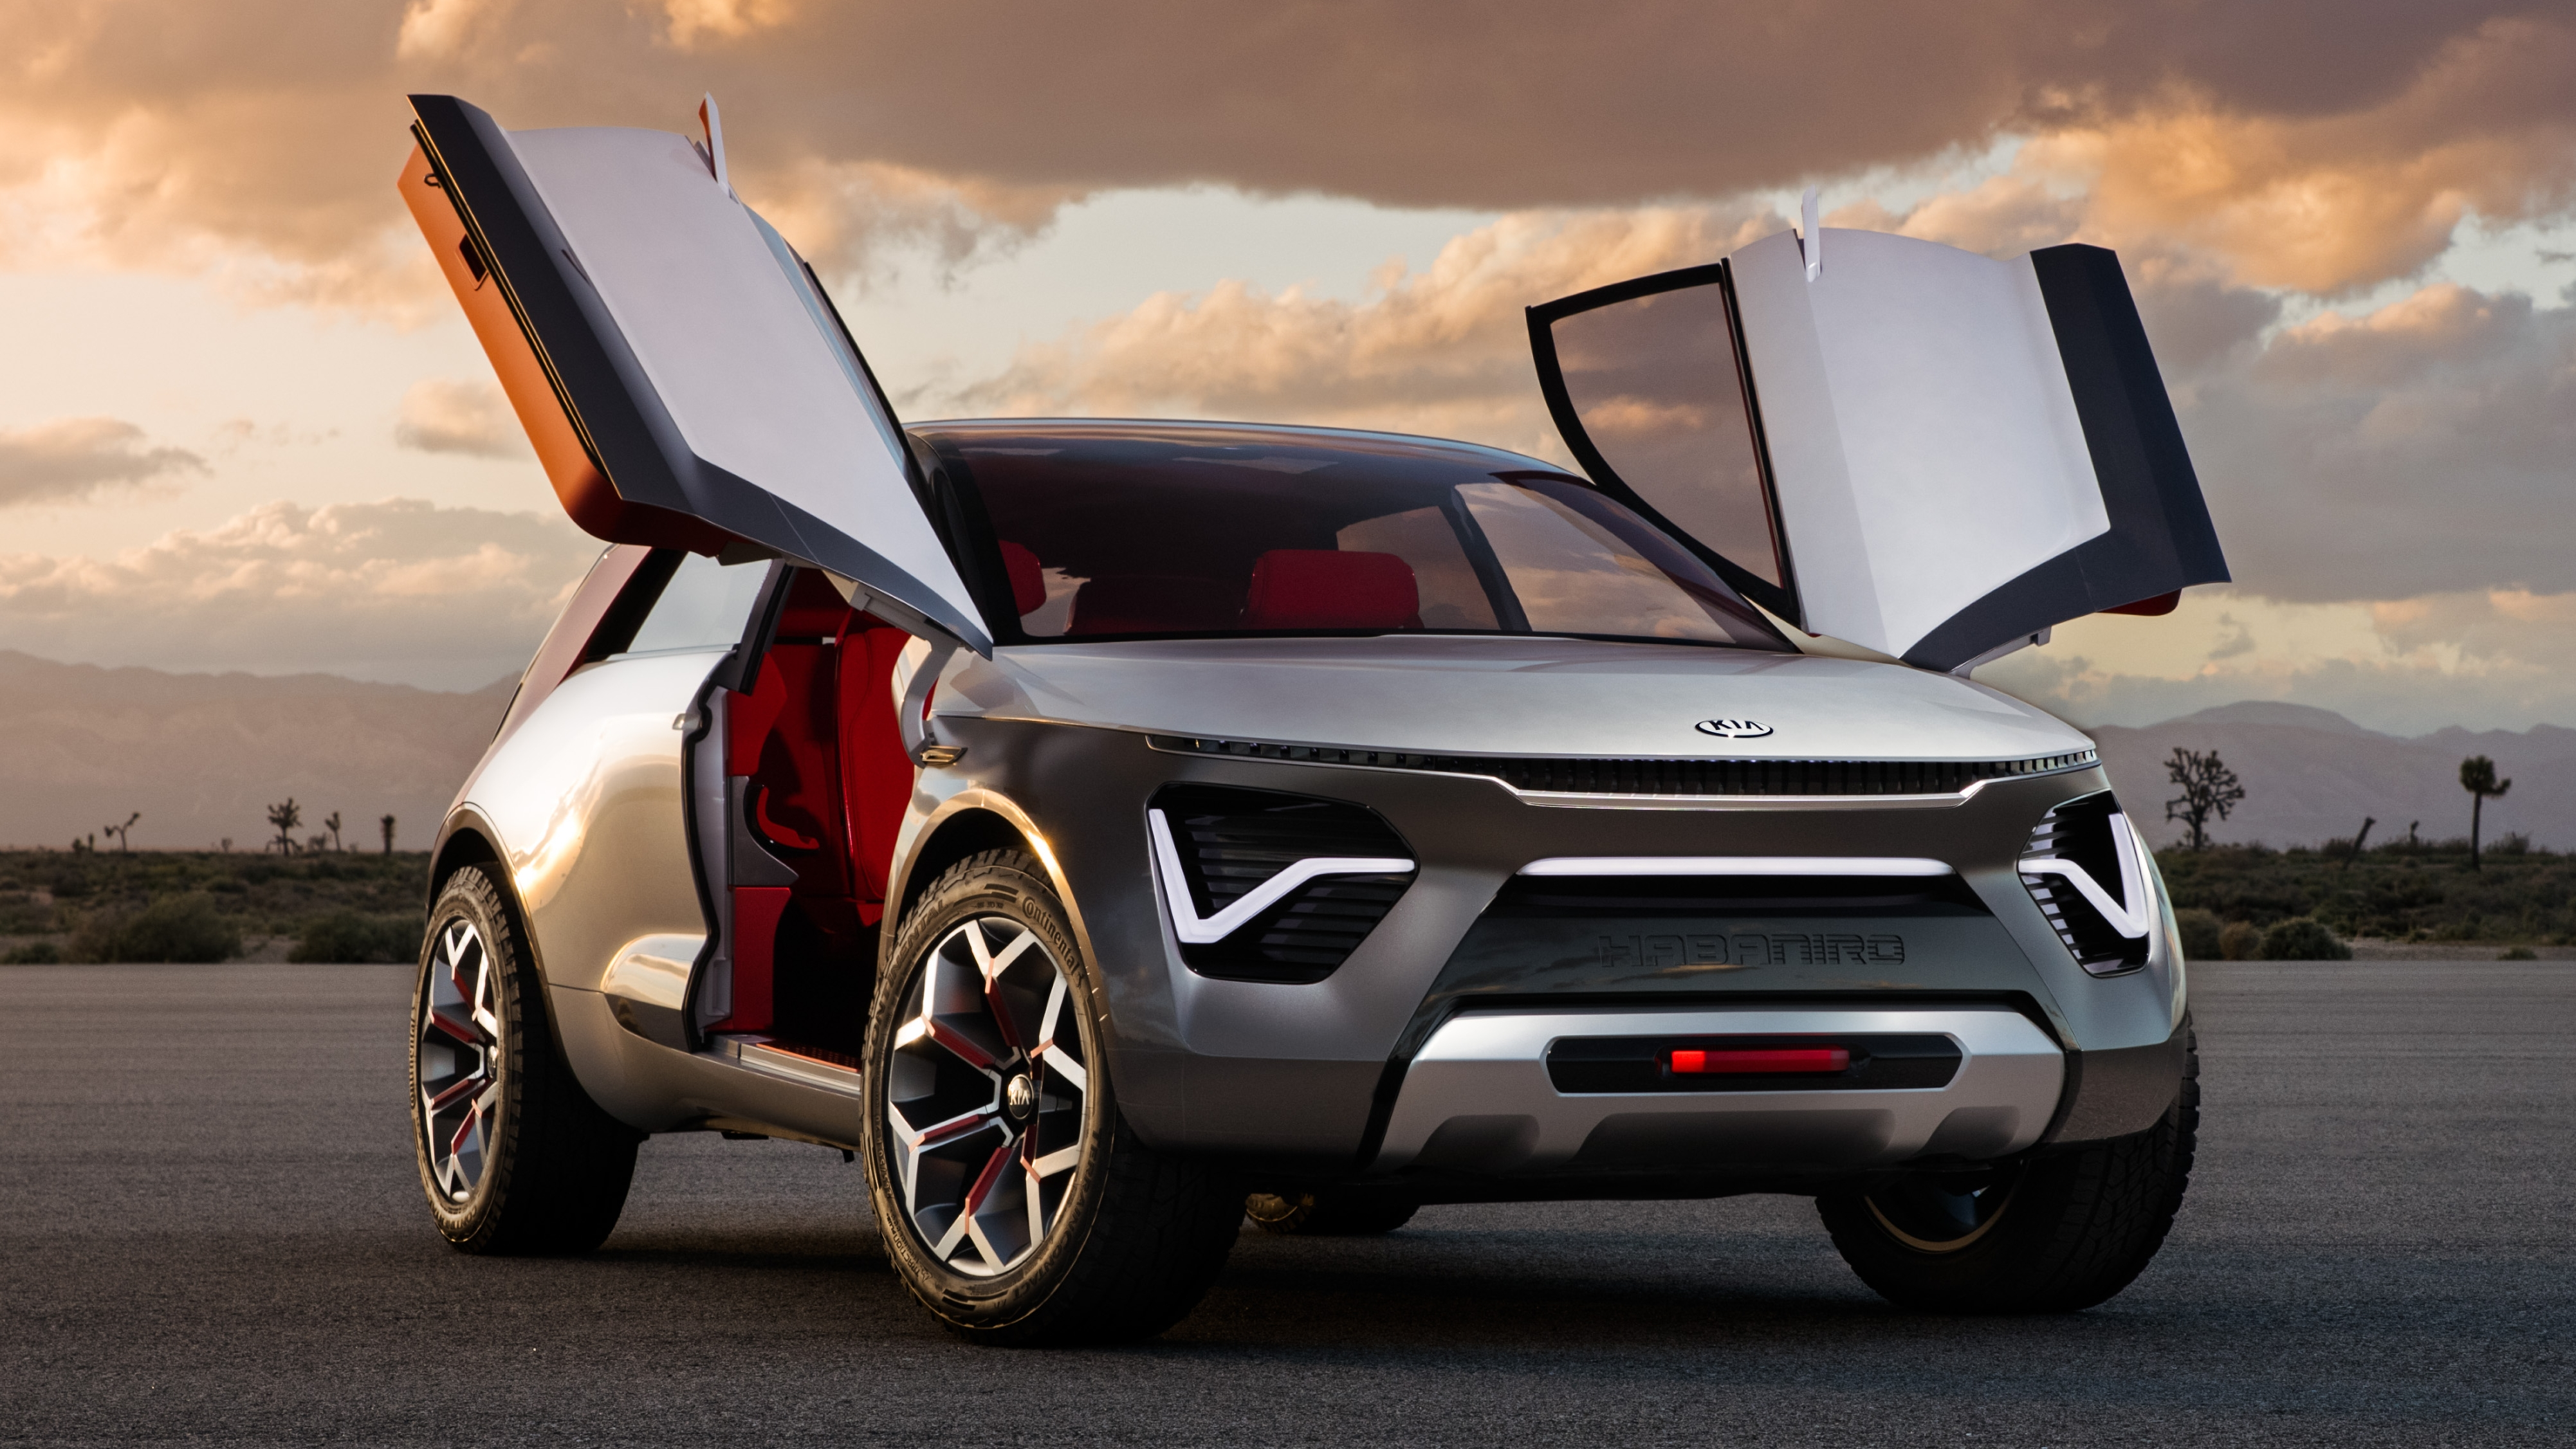 The Habaniro Is Kia's Spicy New Crossover Concept Pictures ...